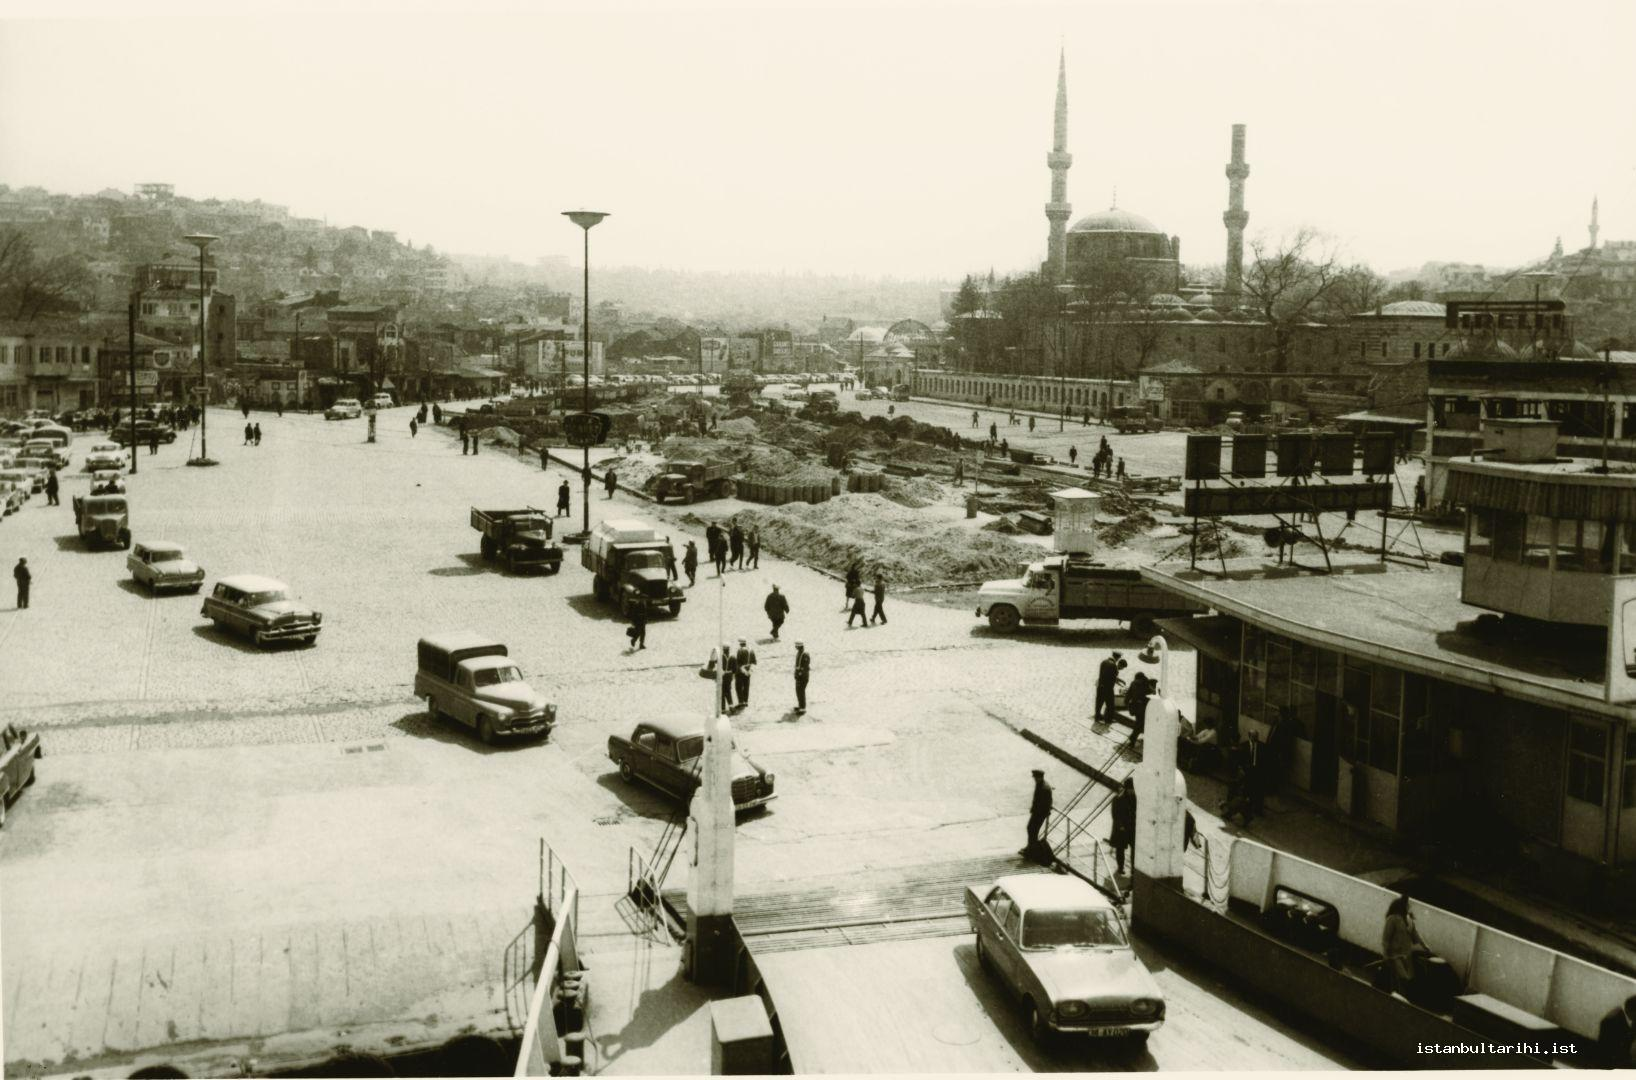 16- Üsküdar pier and Square in 1950s. Gülnuş Emetullah Sultan Mosque is on the right. The cone of its minaret was broken. The tomb of Gülnuş Emetullah Sultan is right